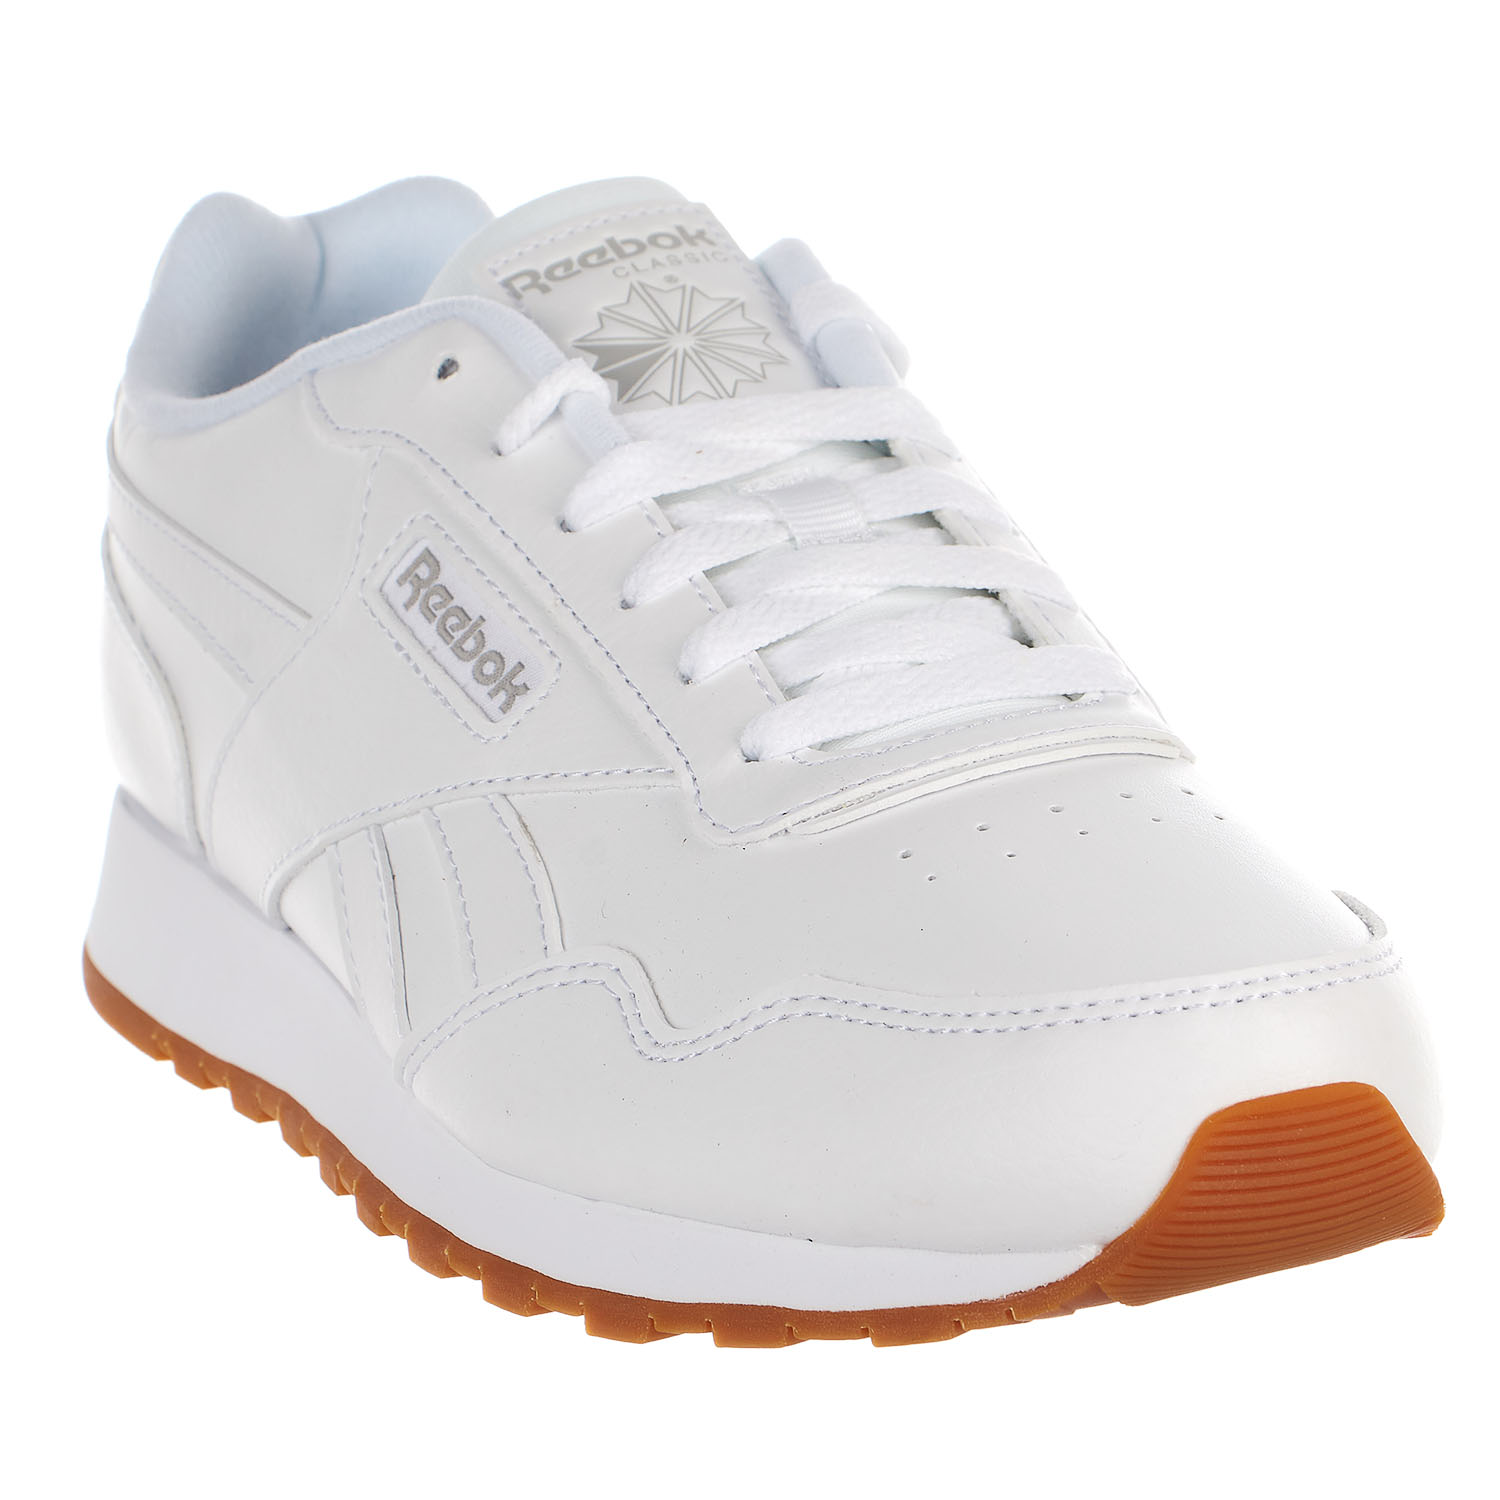 d5423d4d87bf5 reebok classic harman men's running shoes white/gum cm9203